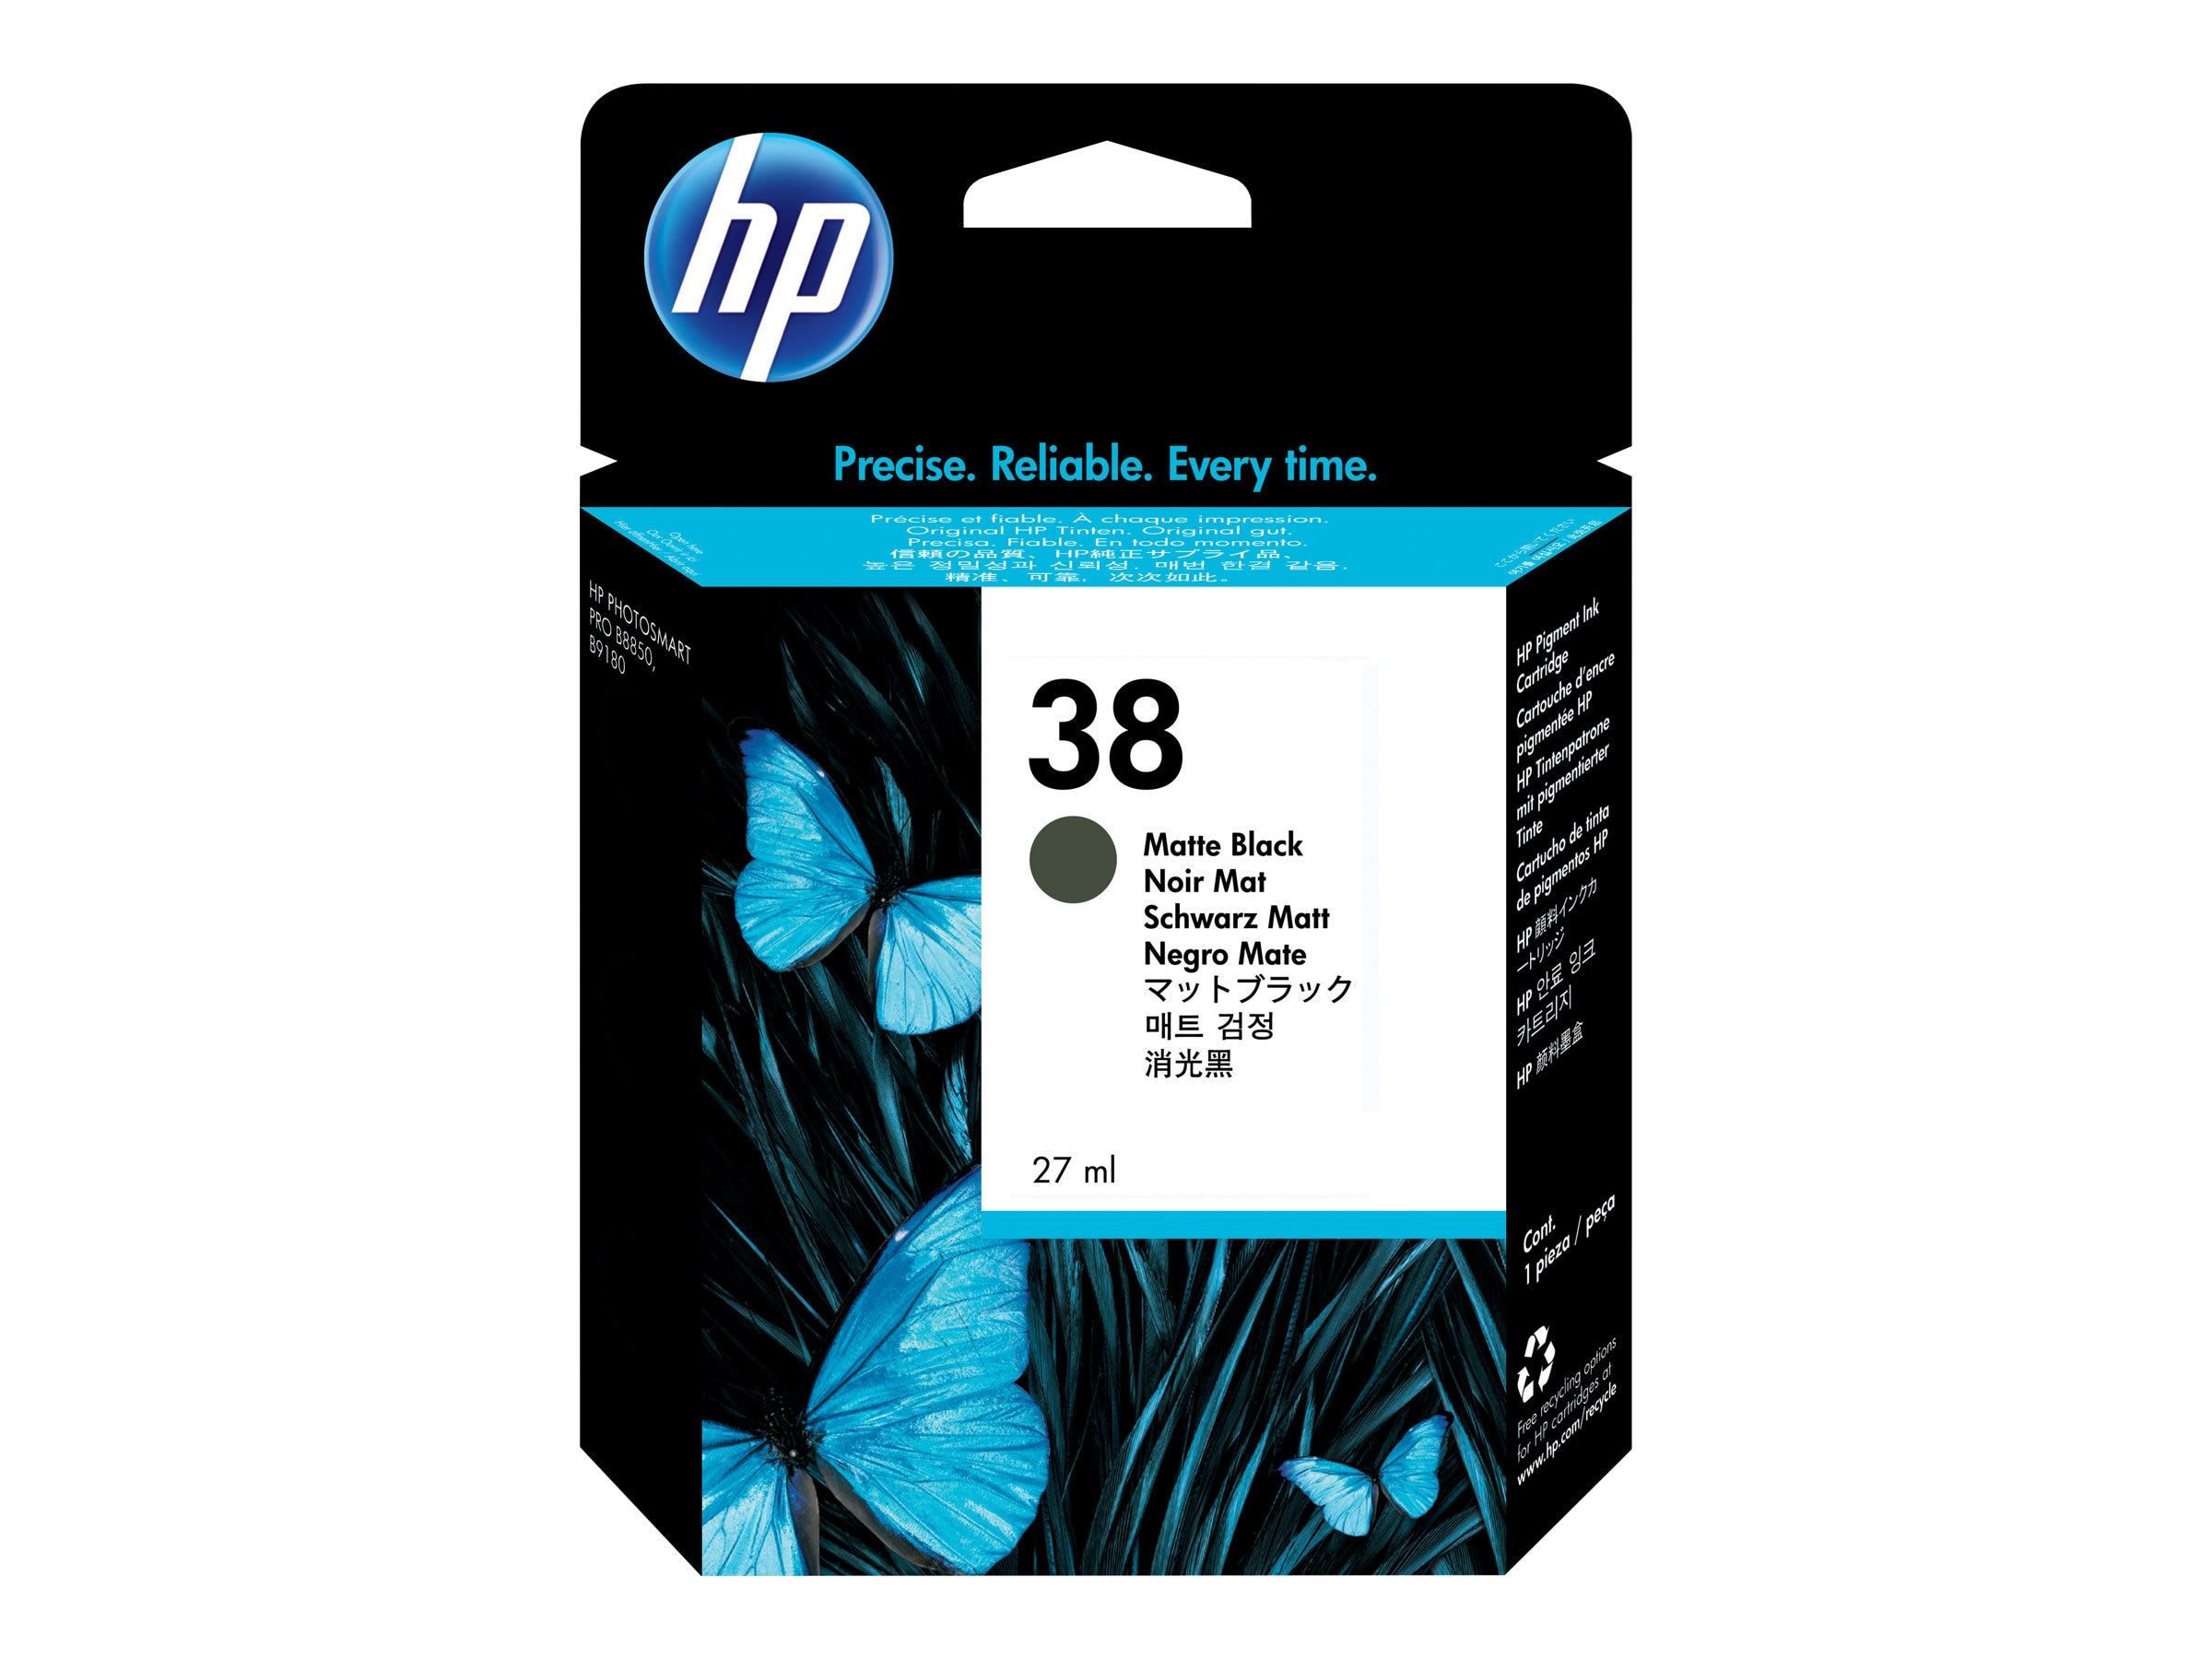 HP 38 (C9412A) Matte Black Pigment Original Ink Cartridge, C9412A, 7192332, Ink Cartridges & Ink Refill Kits